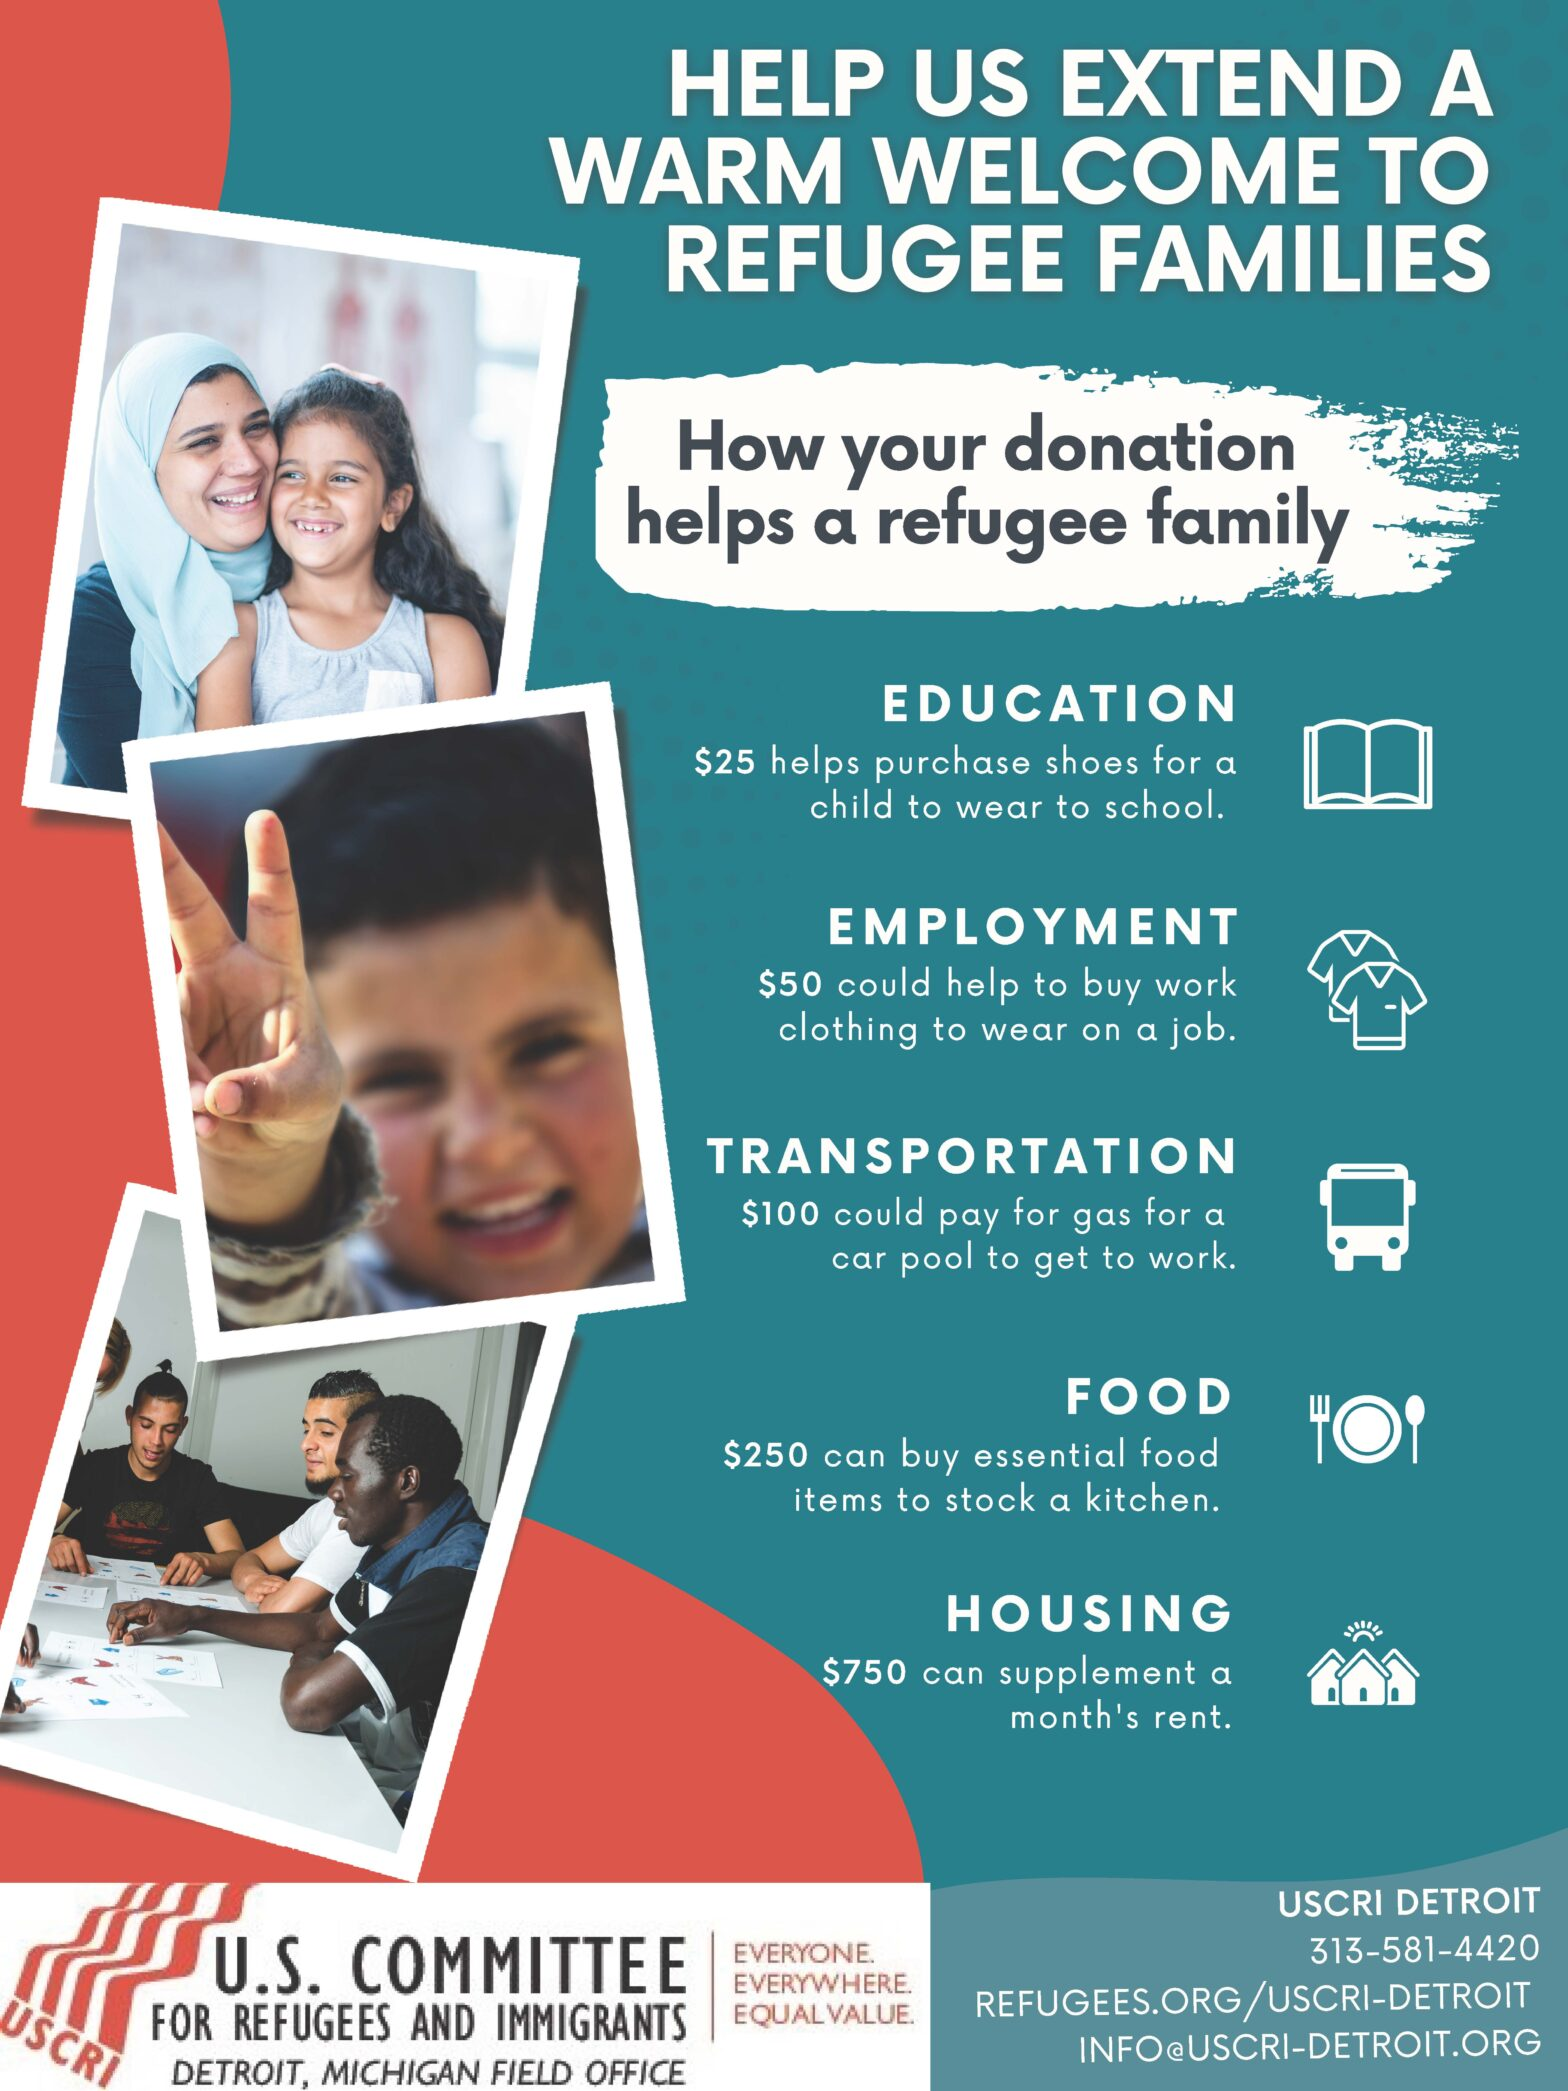 Help Us Extend a Warm Welcome to Refugee Families